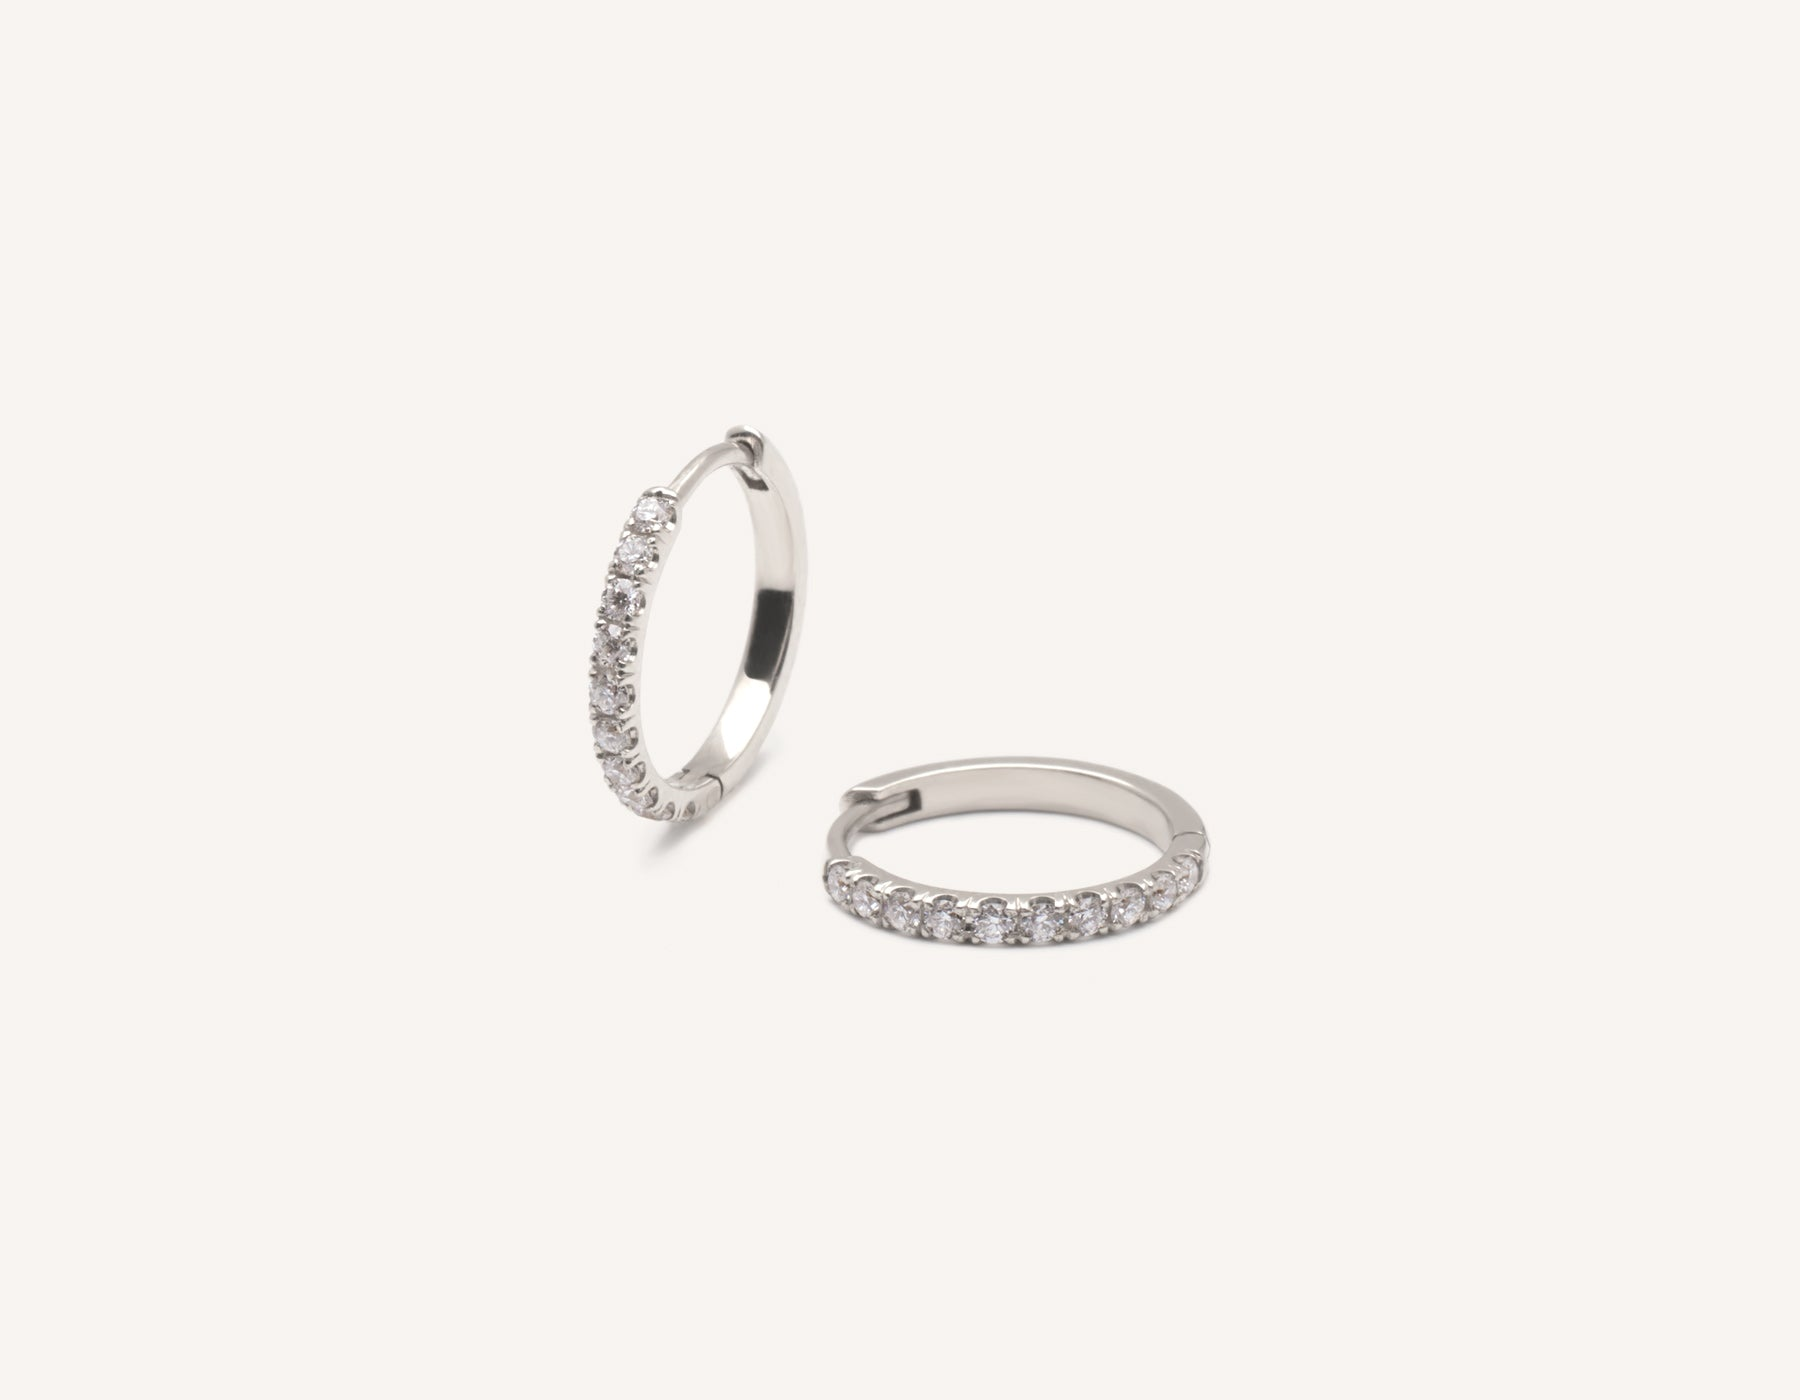 Simple classic 14k solid gold Medium Pave Diamond Huggie Hoops Earrings Vrai and Oro, 14K White Gold